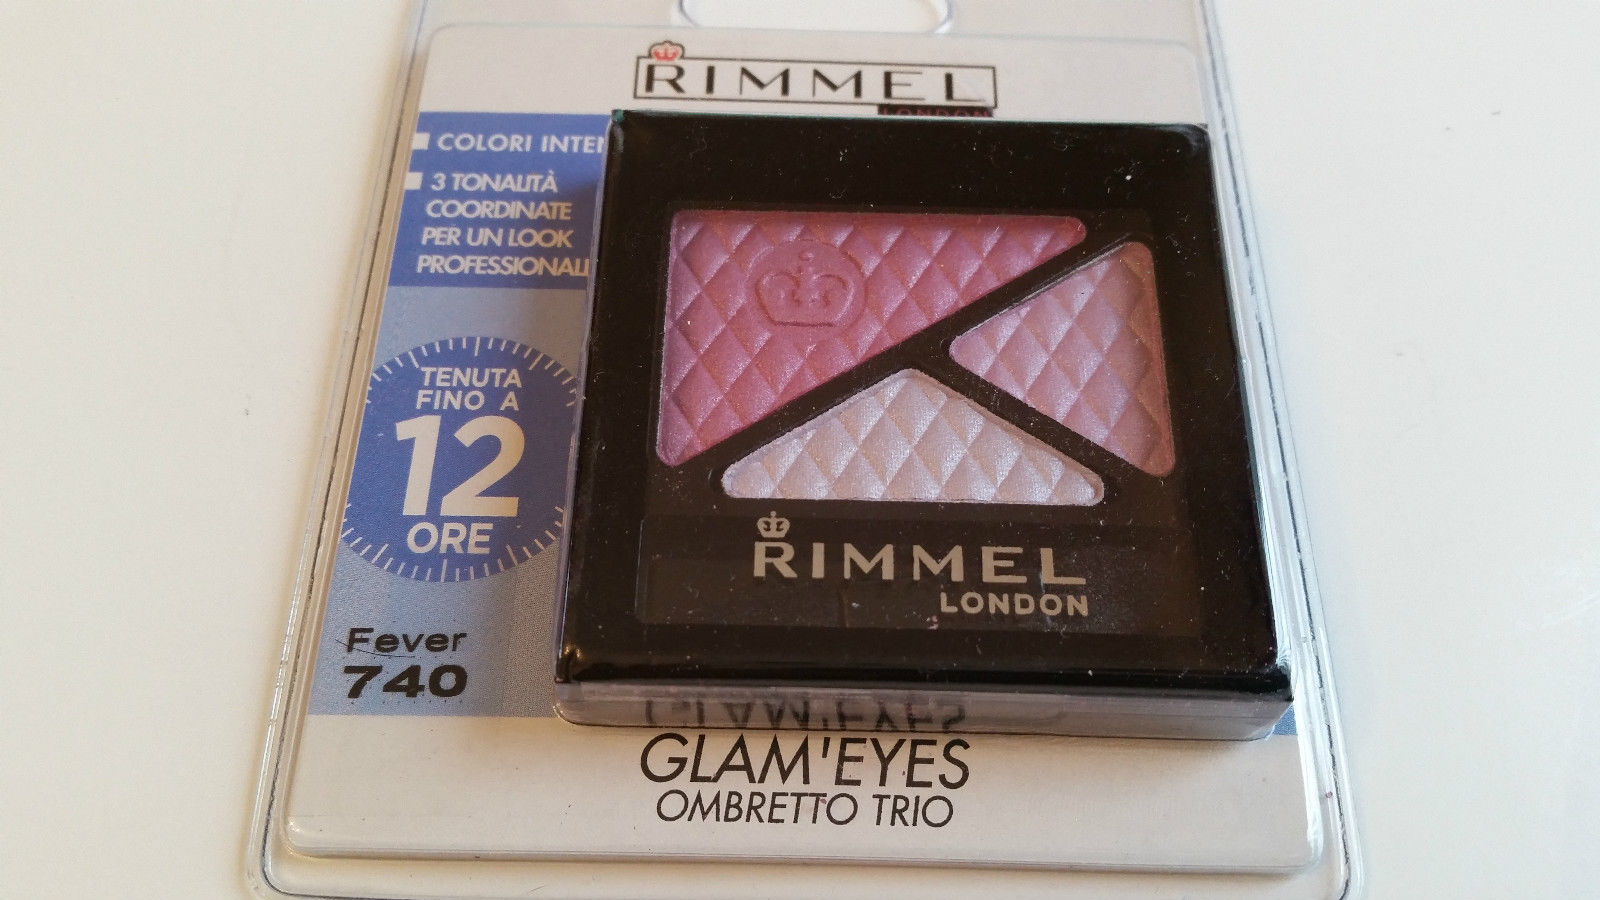 RIMMEL GLAM'EYES TRIO EYESHADOW - 740 FEVER